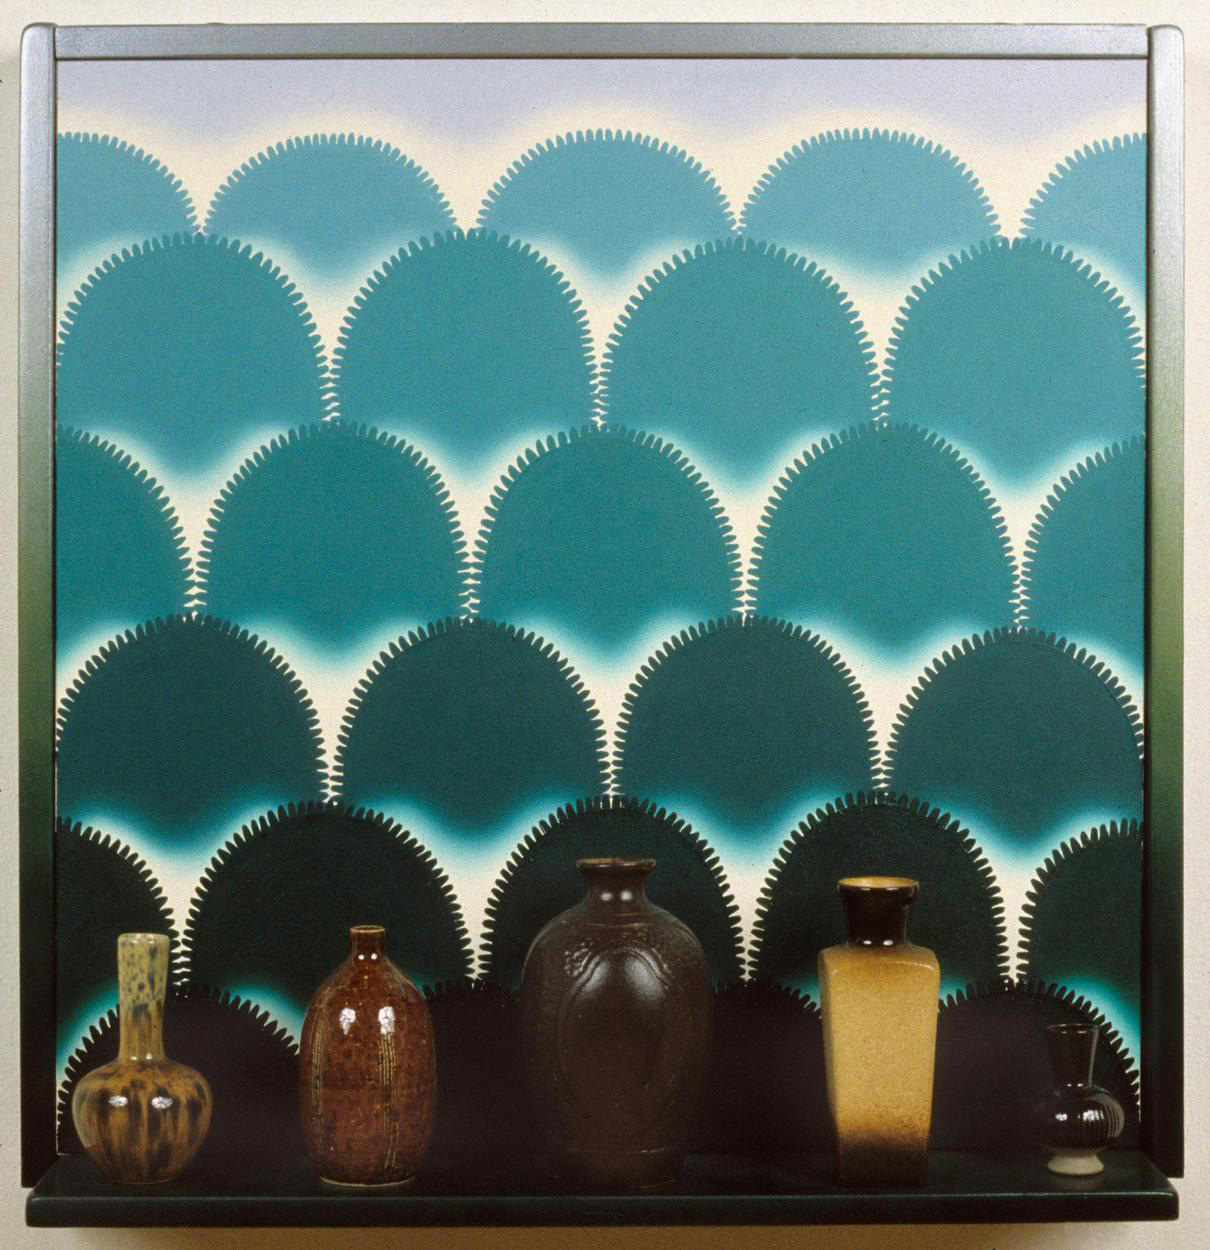 Roger Brown, <em>Virtual Still Life #8: Vases With A View</em>, 1995, oil on canvas, mixed media, 25 x 25-1/2 x 7 in. © The School of the Art Institute of Chicago and the Brown family.